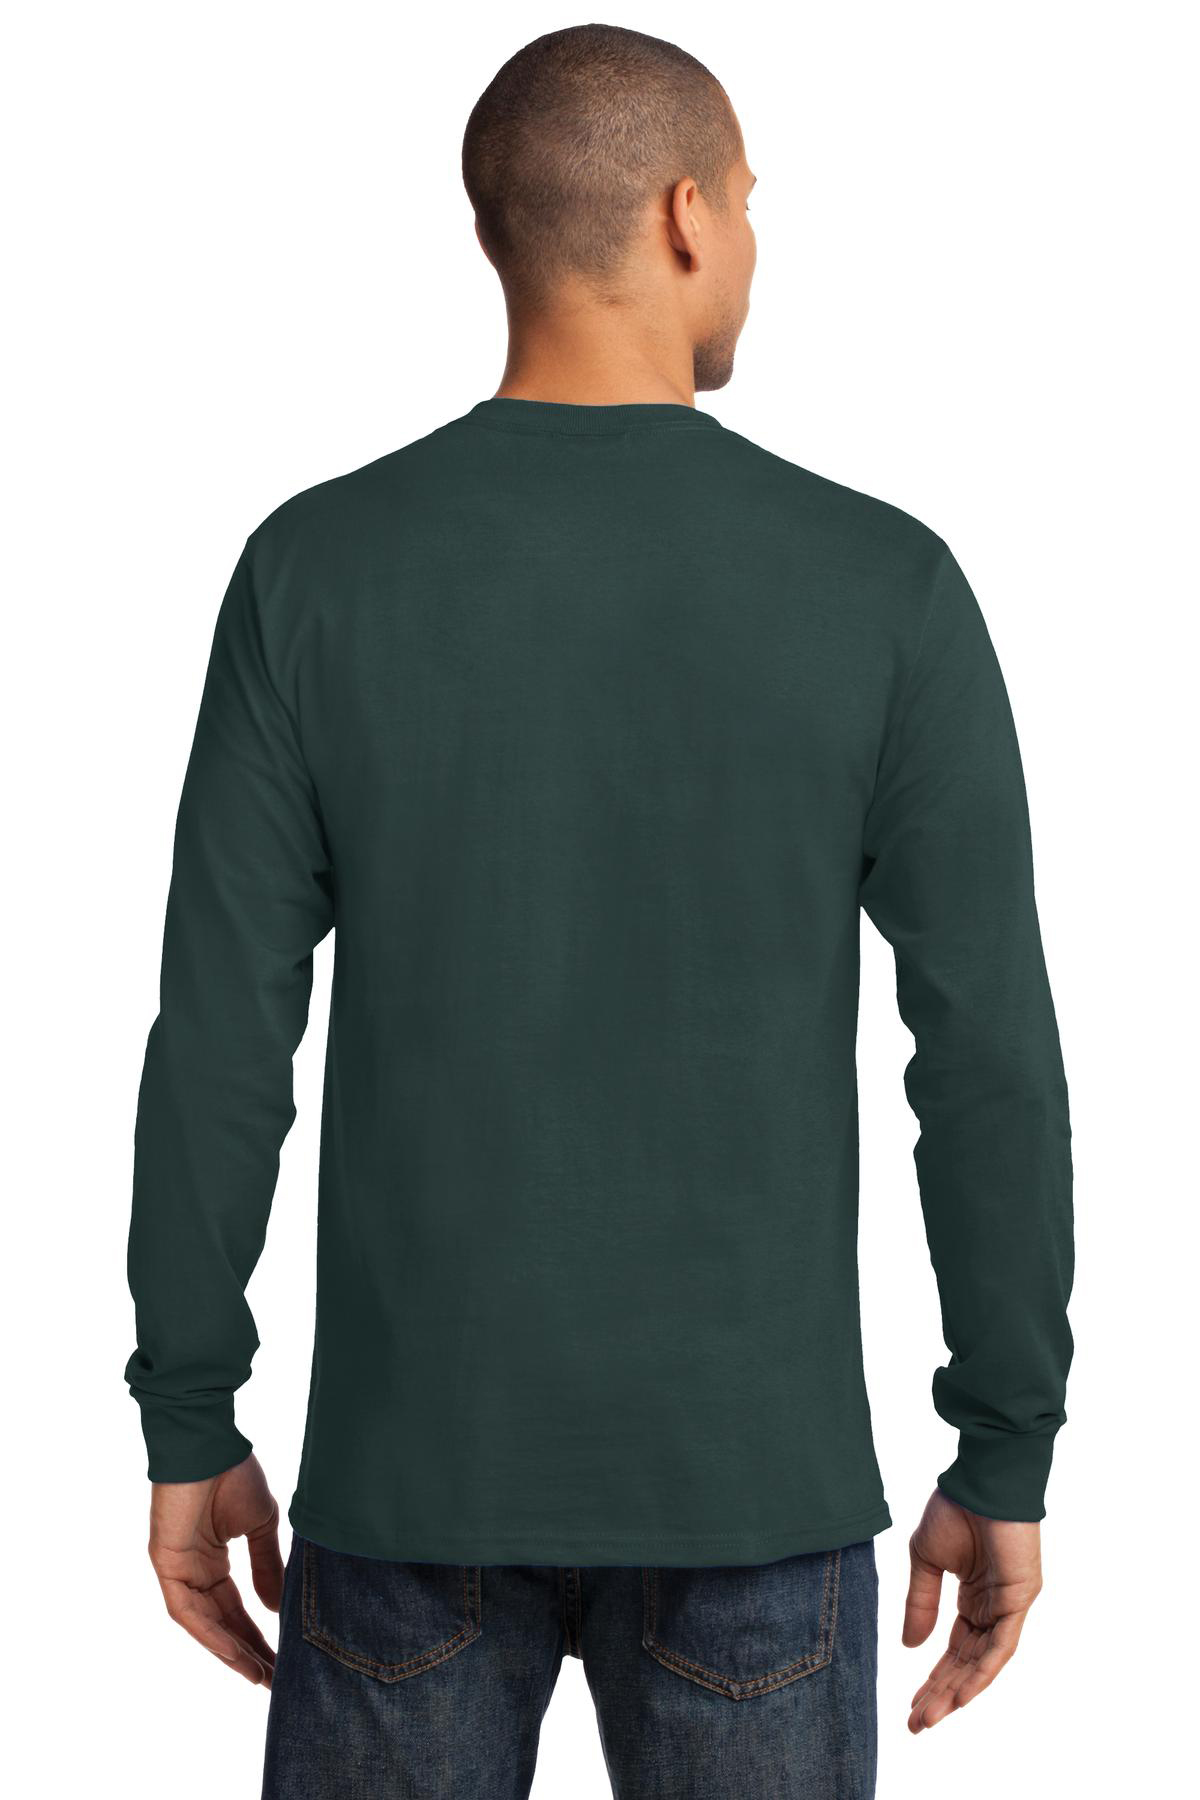 teacher listing il zoom long sleeve pocket fullxfull colors tee embroidered comforter comfort appreciation